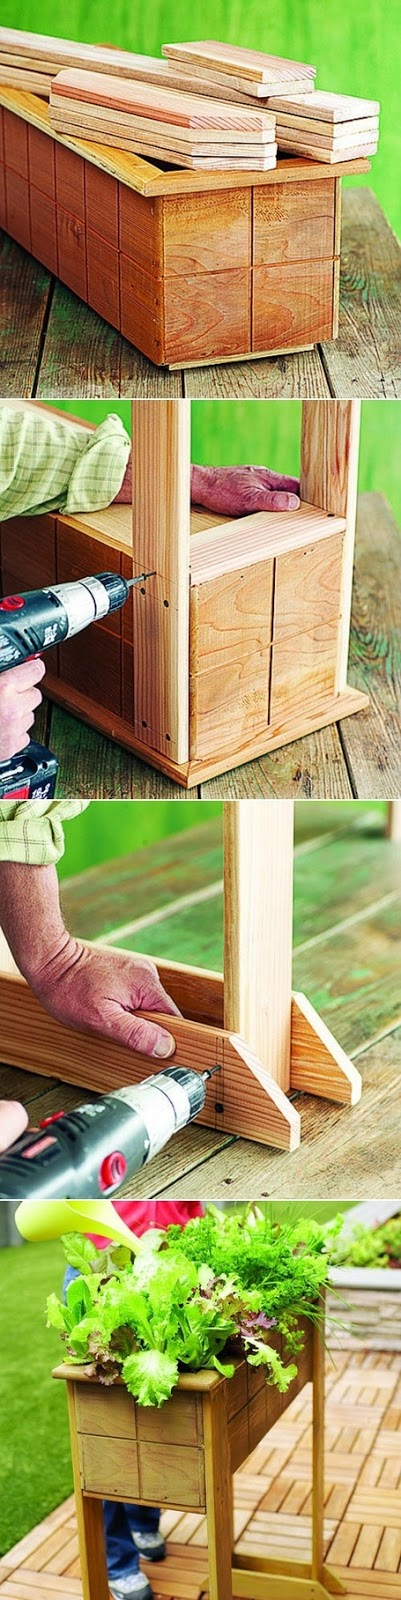 How To Make a Planter Box From wood